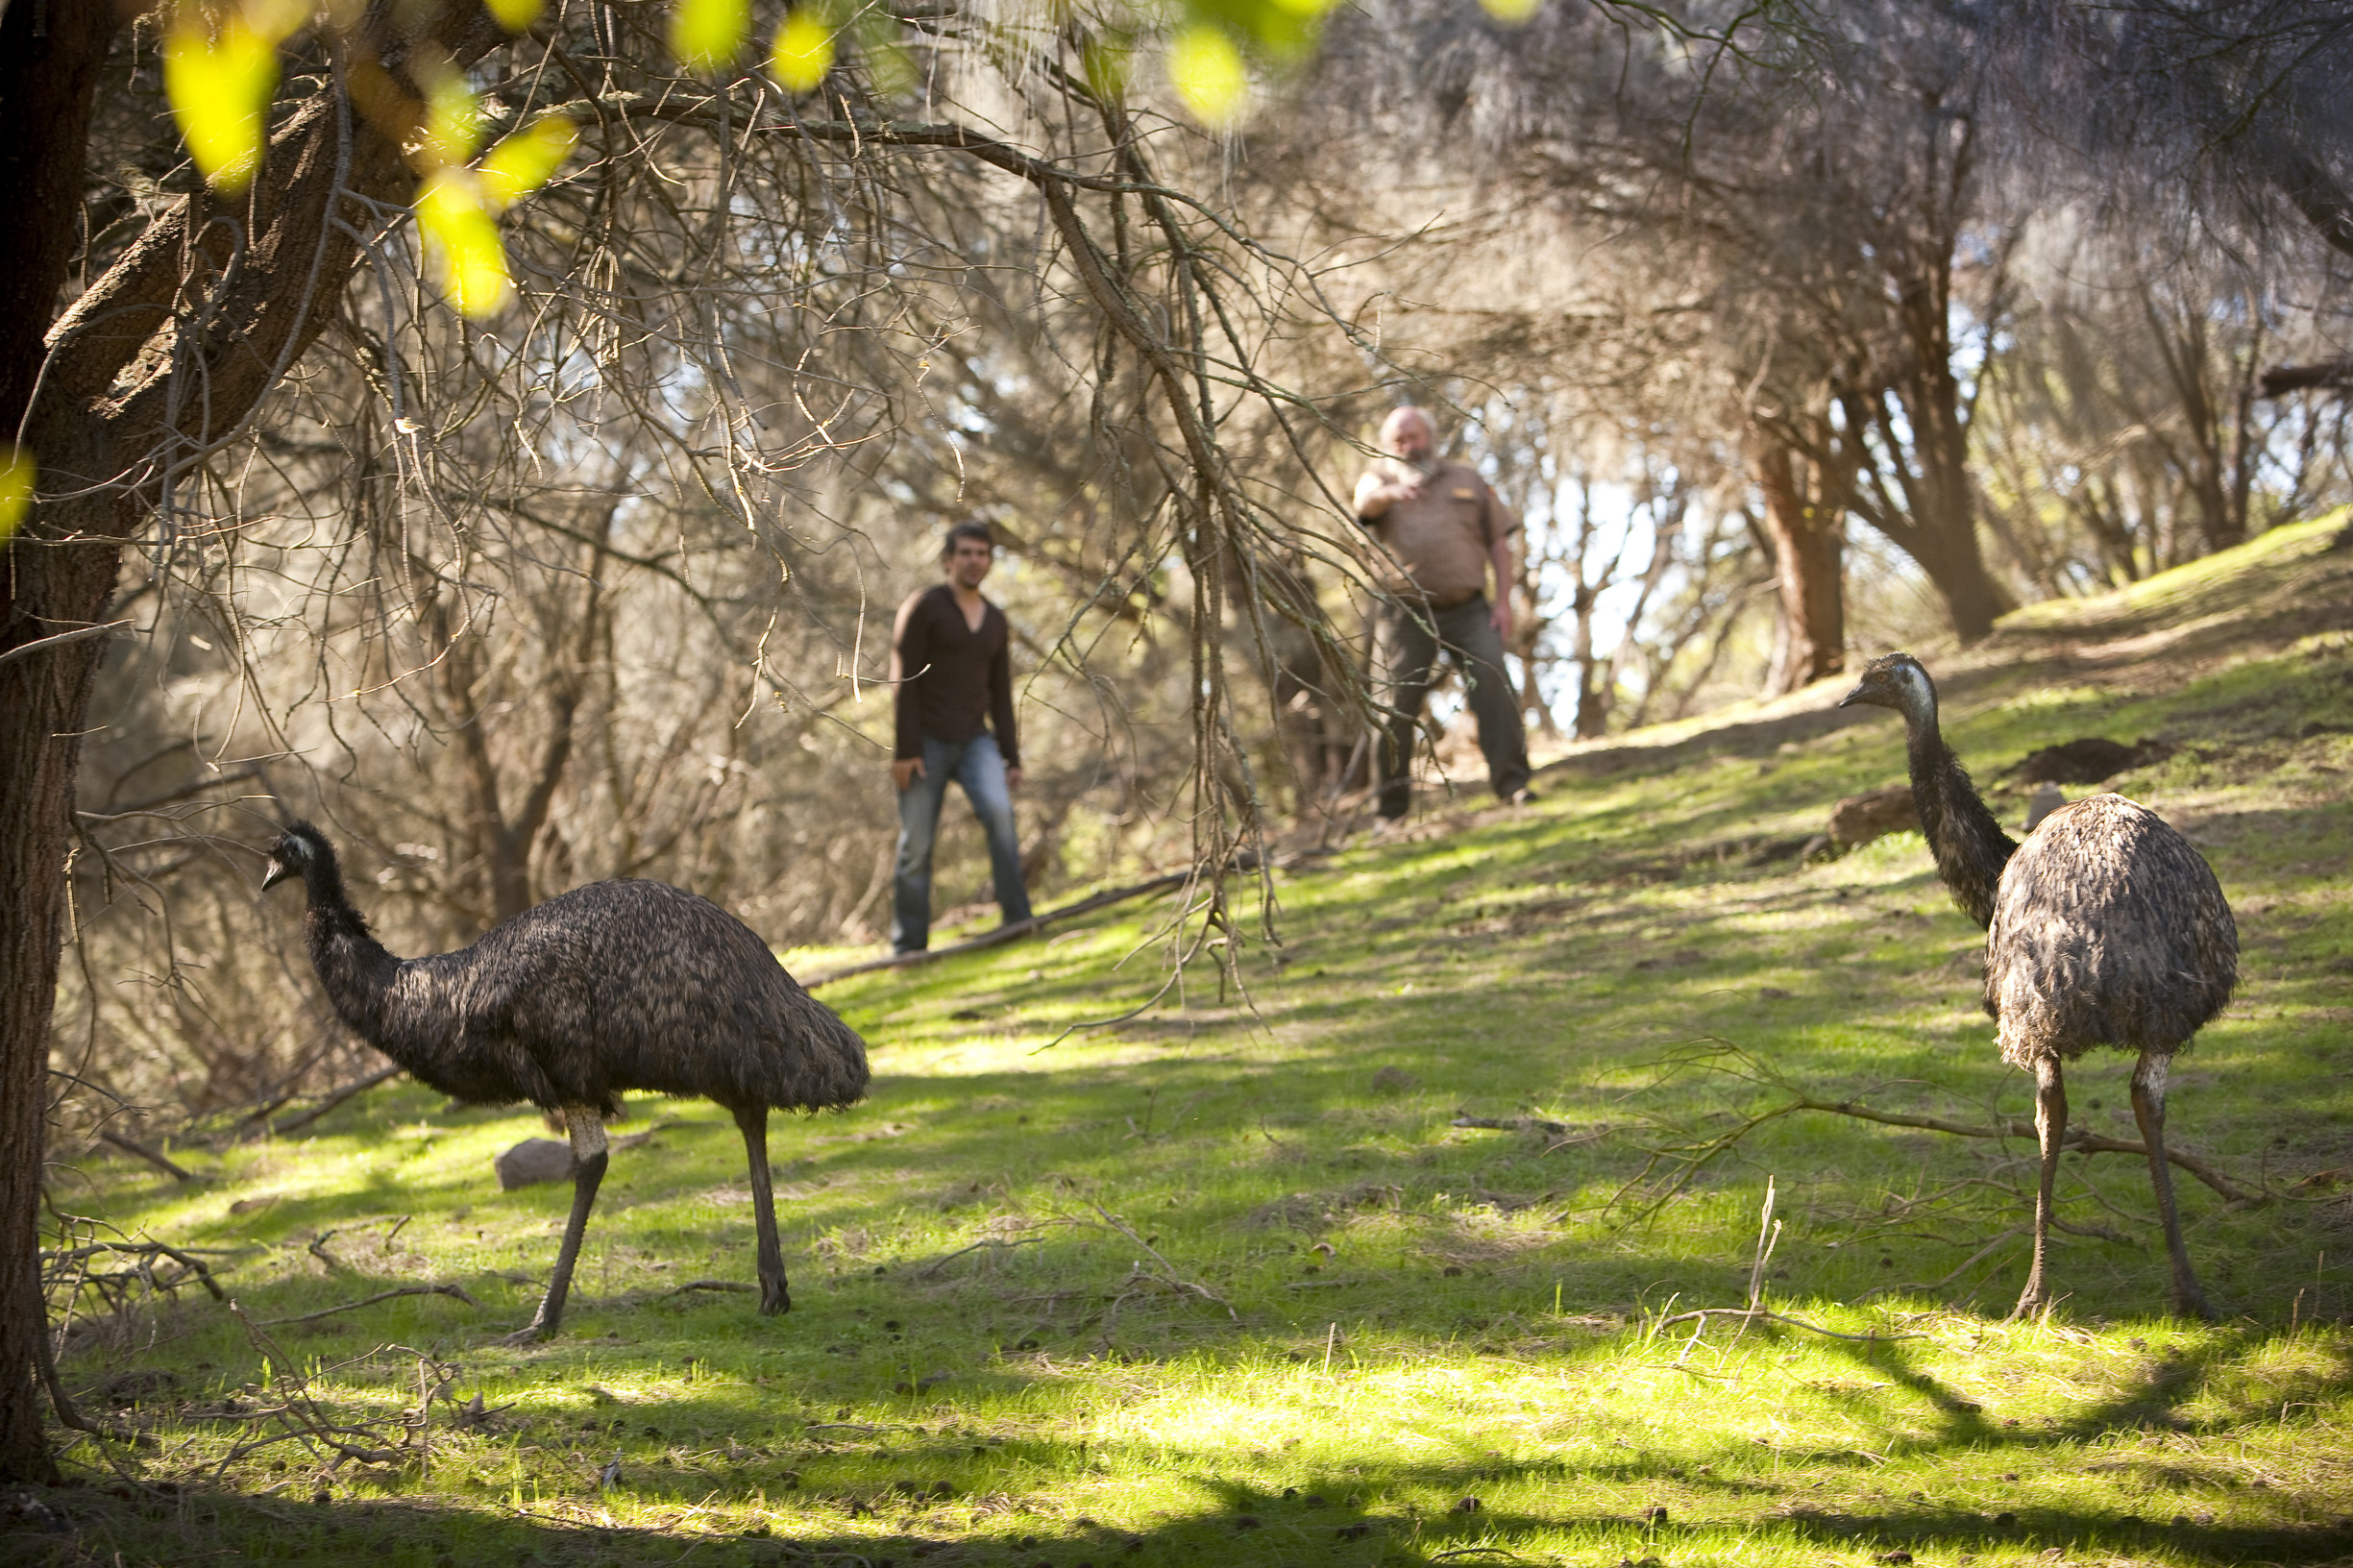 In this image is possible to see two men looking at two emus walking through Tower Hill